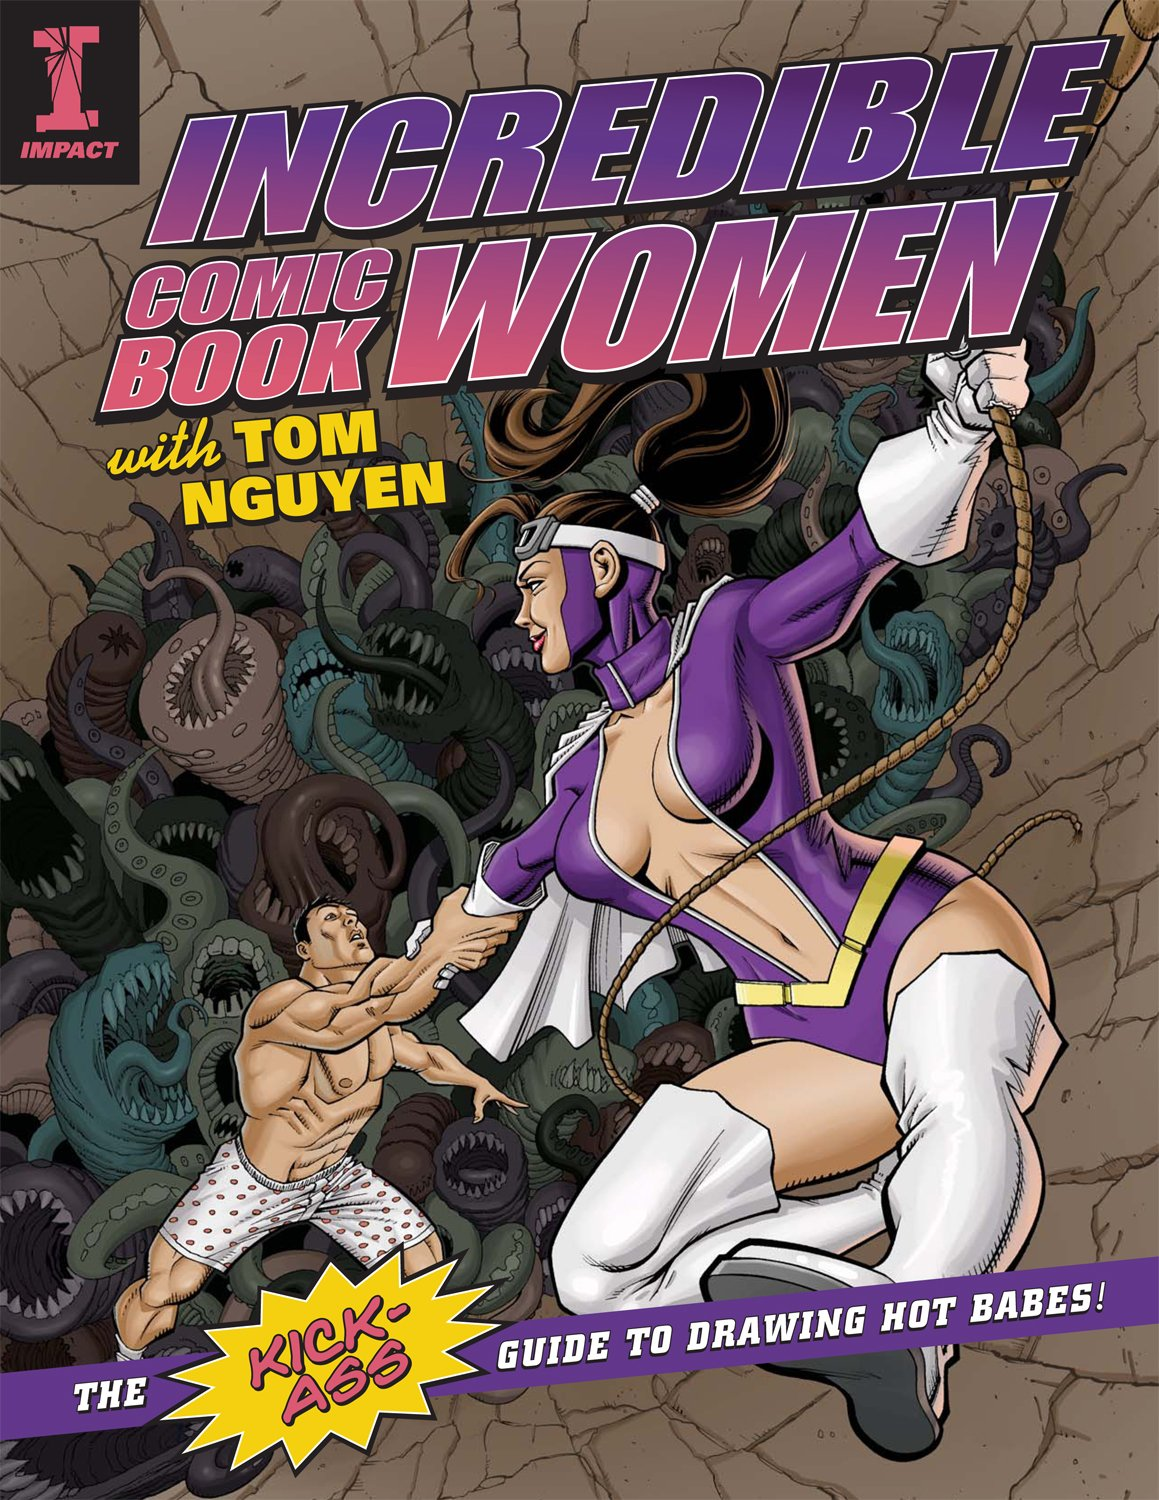 Girls kick butt sexy pics Incredible Comic Book Women With Tom Nguyen The Kick Ass Guide To Drawing Hot Babes Kindle Edition By Nguyen Tom Arts Photography Kindle Ebooks Amazon Com